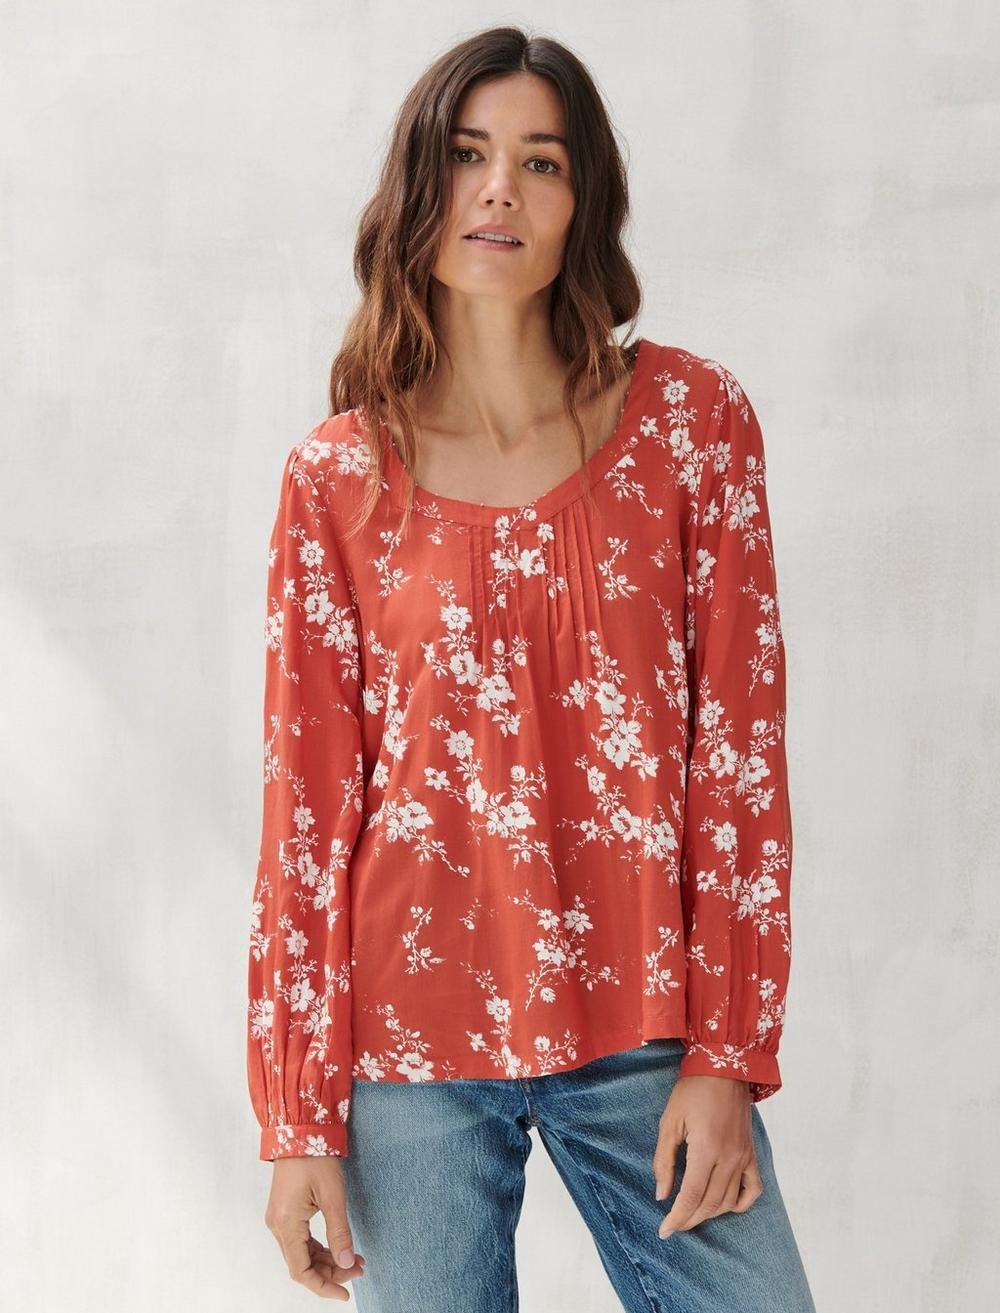 PRINTED SQUARE NECK TOP, image 1